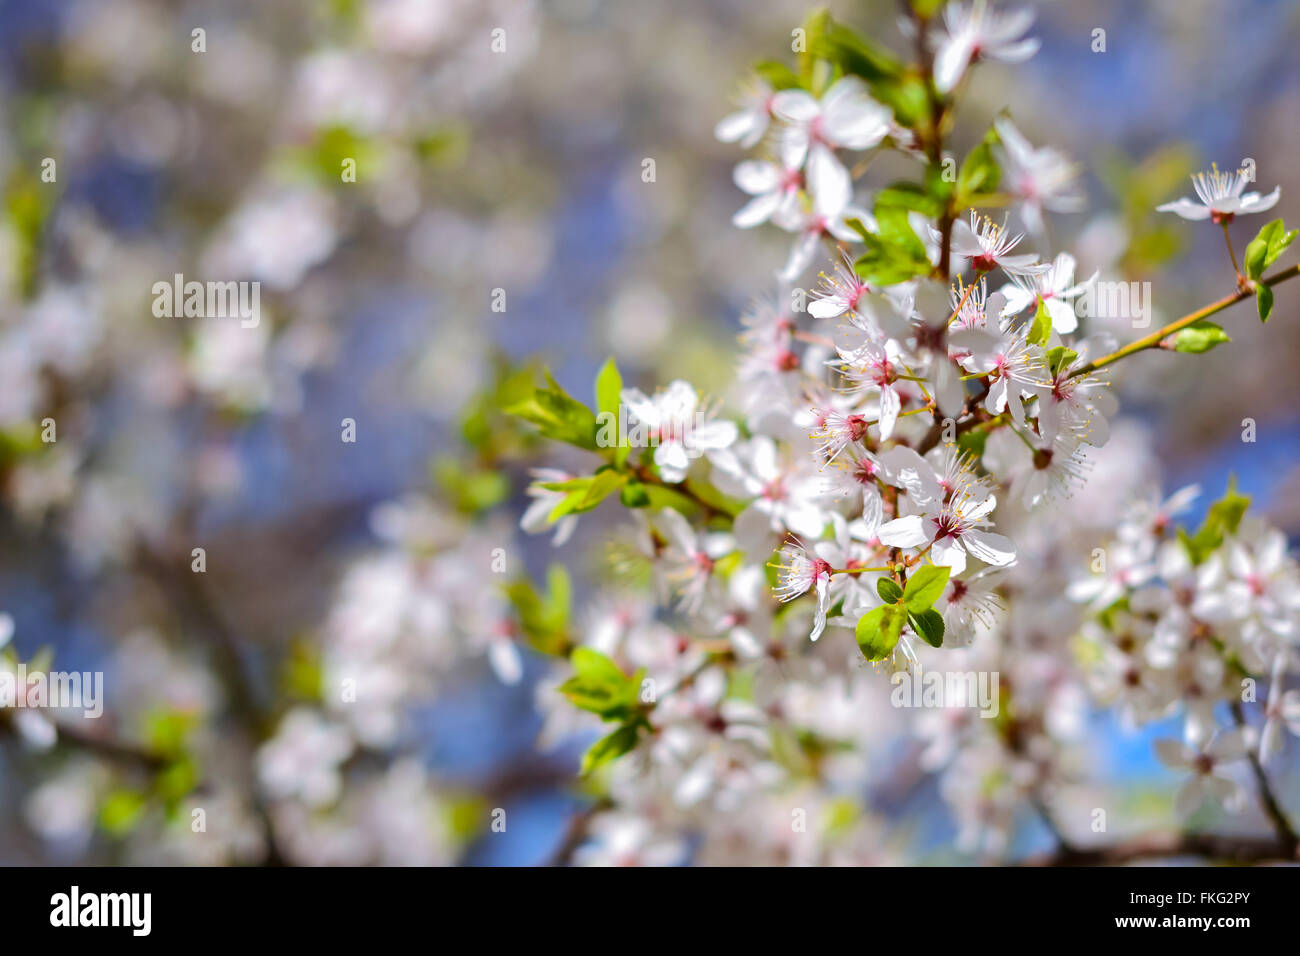 Hawthorn blooms in soft background of flowering branches and sky hawthorn blooms in soft background of flowering branches and sky early spring white flowers background with bokeh mightylinksfo